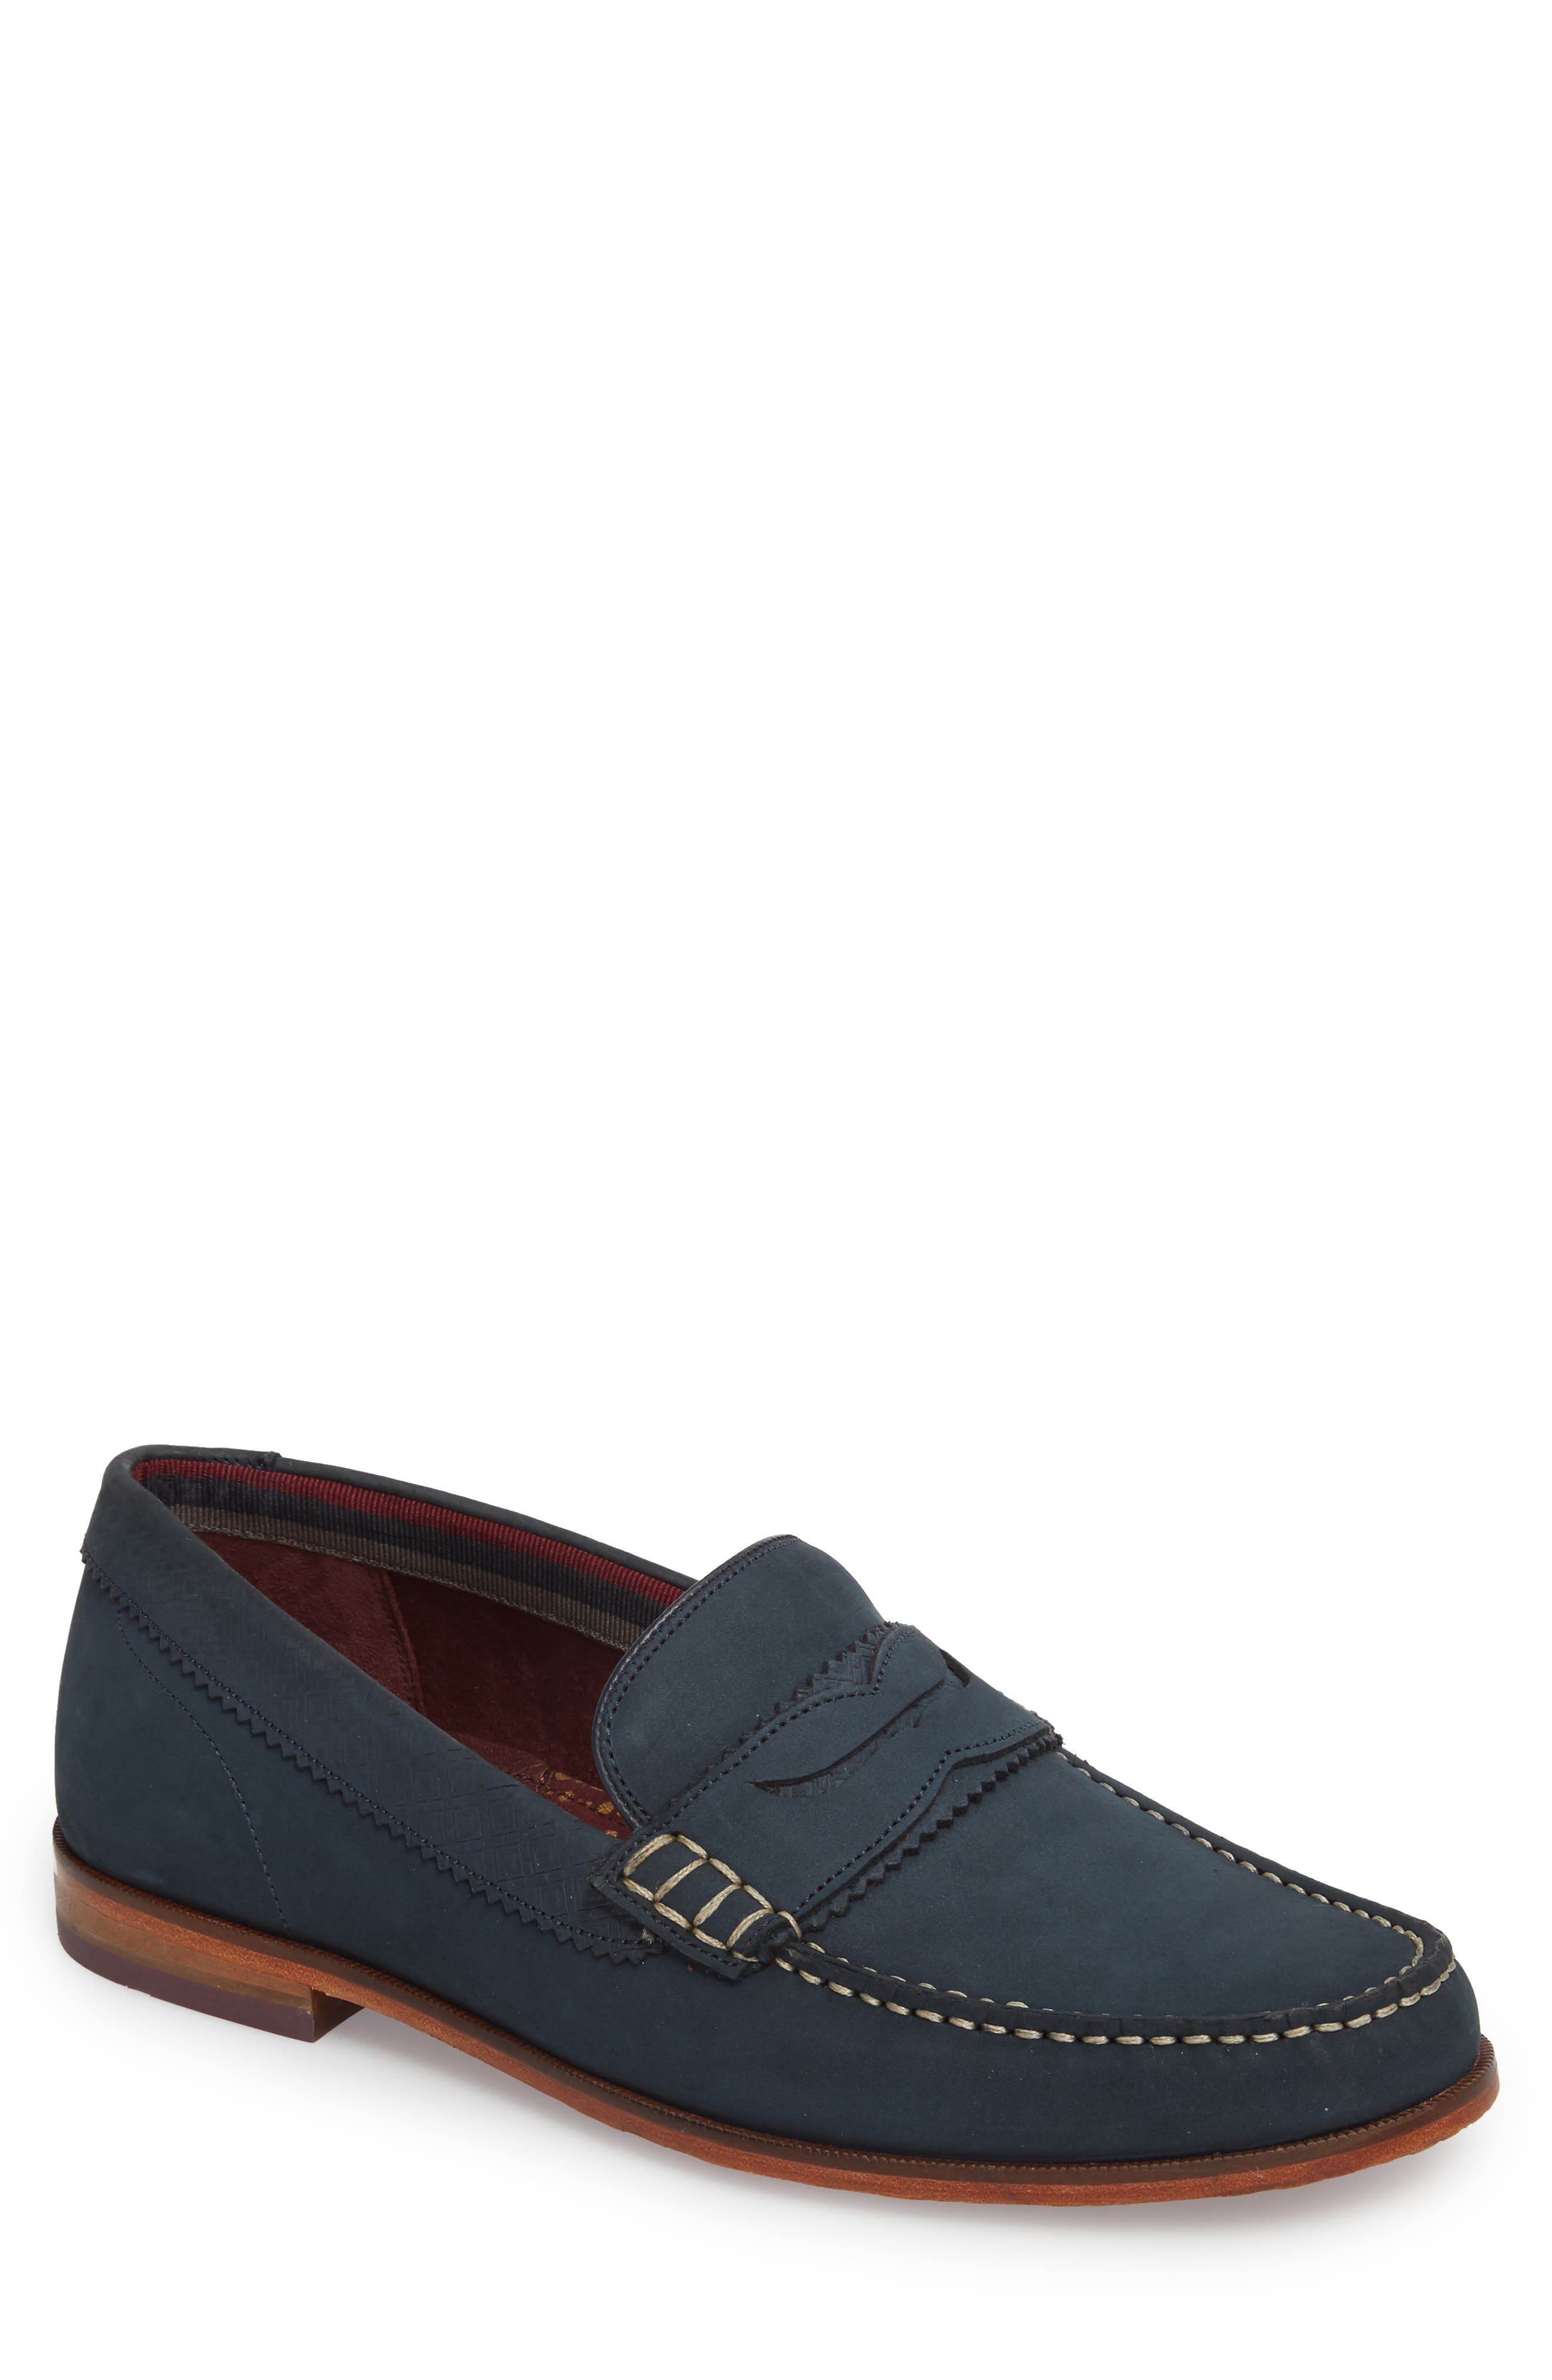 Miicke 5 Penny Loafer,                             Main thumbnail 1, color,                             Dark Blue Nubuck